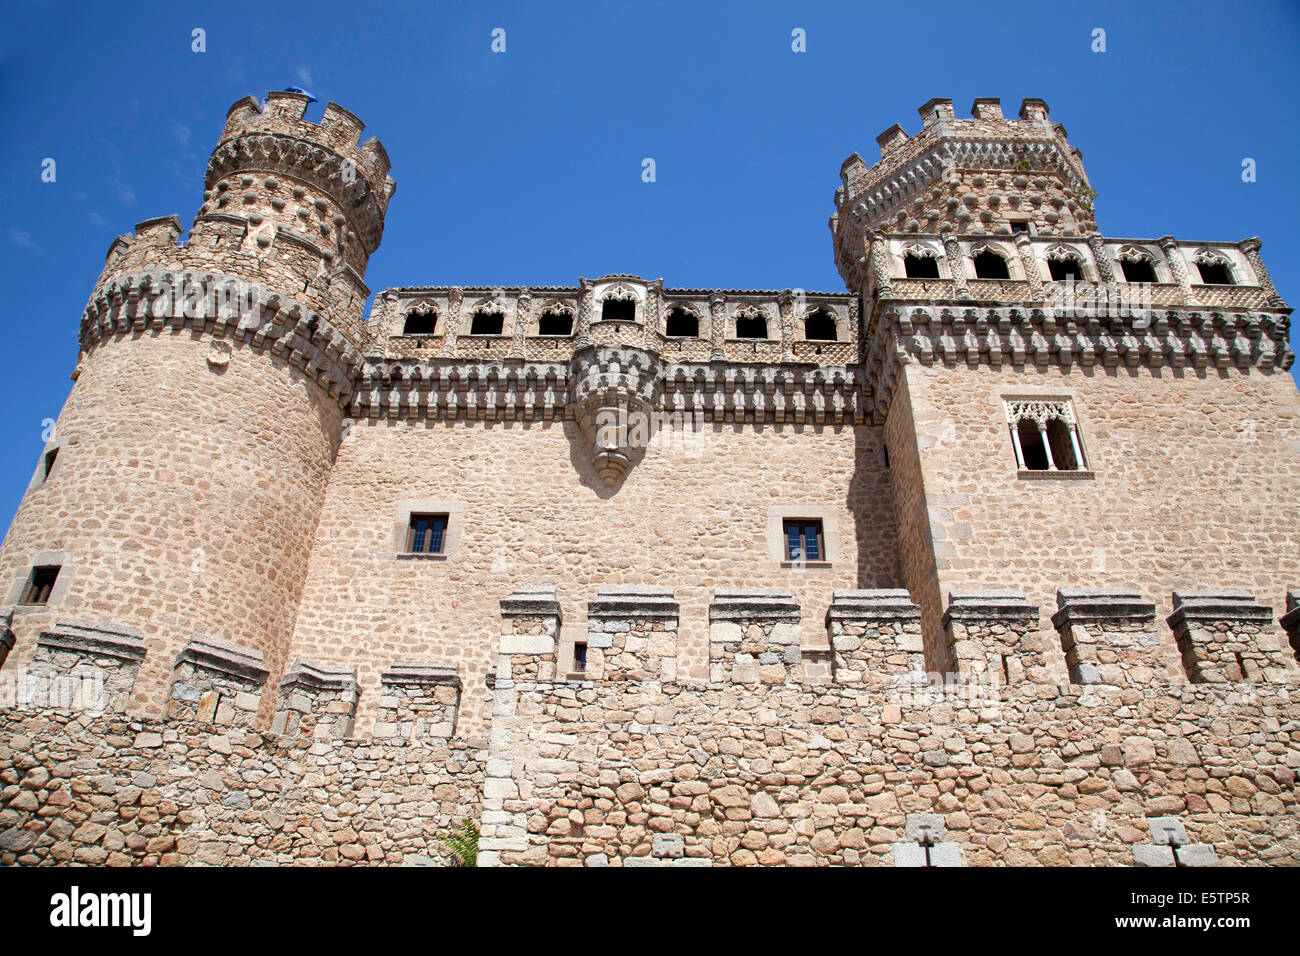 Castle of Manzanares el Real, Madrid, Spain Stock Photo